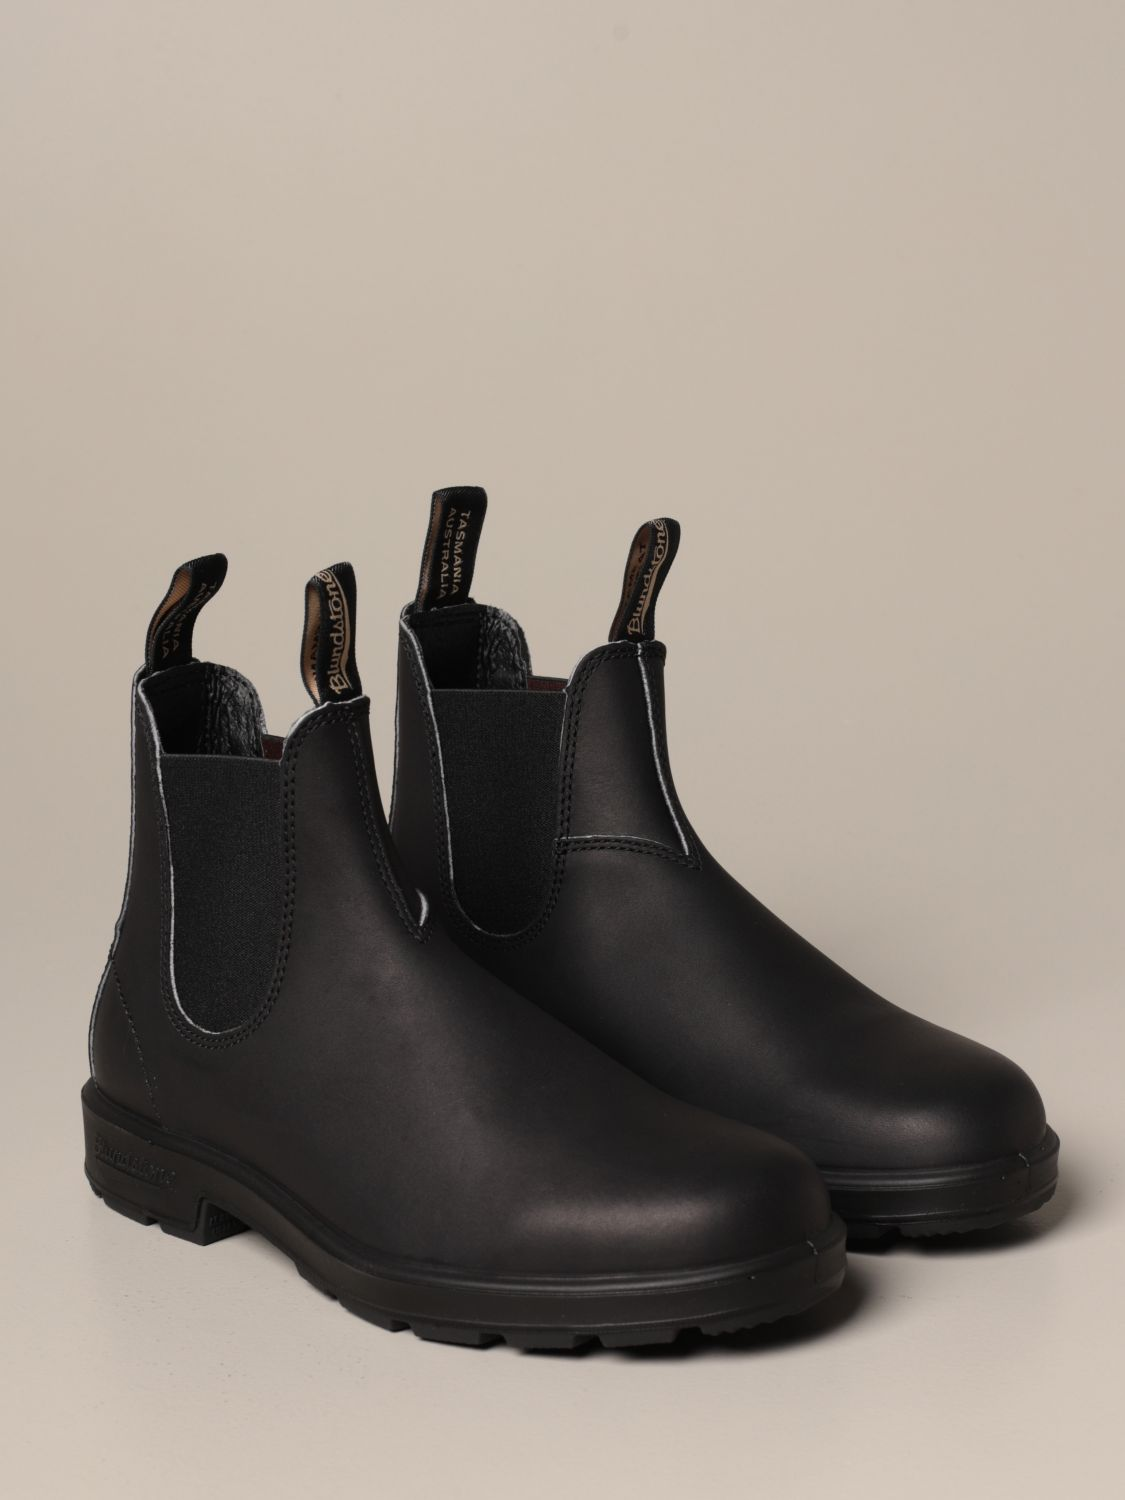 Boots Blundstone: Boots men Blundstone black 2